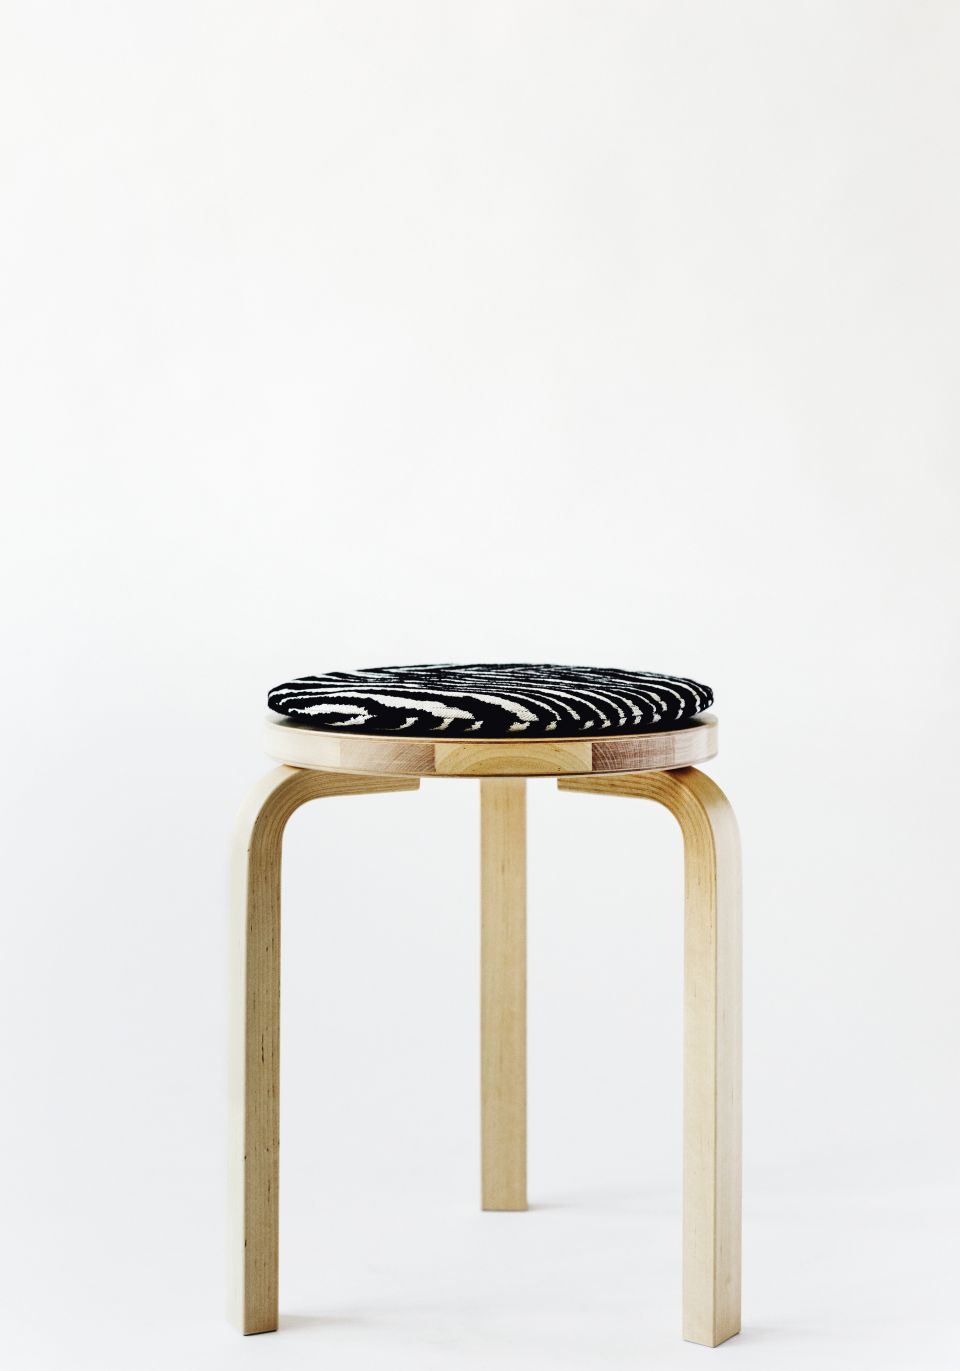 Aalto Artek Zebra Cushion / Pillow Seat Cushion